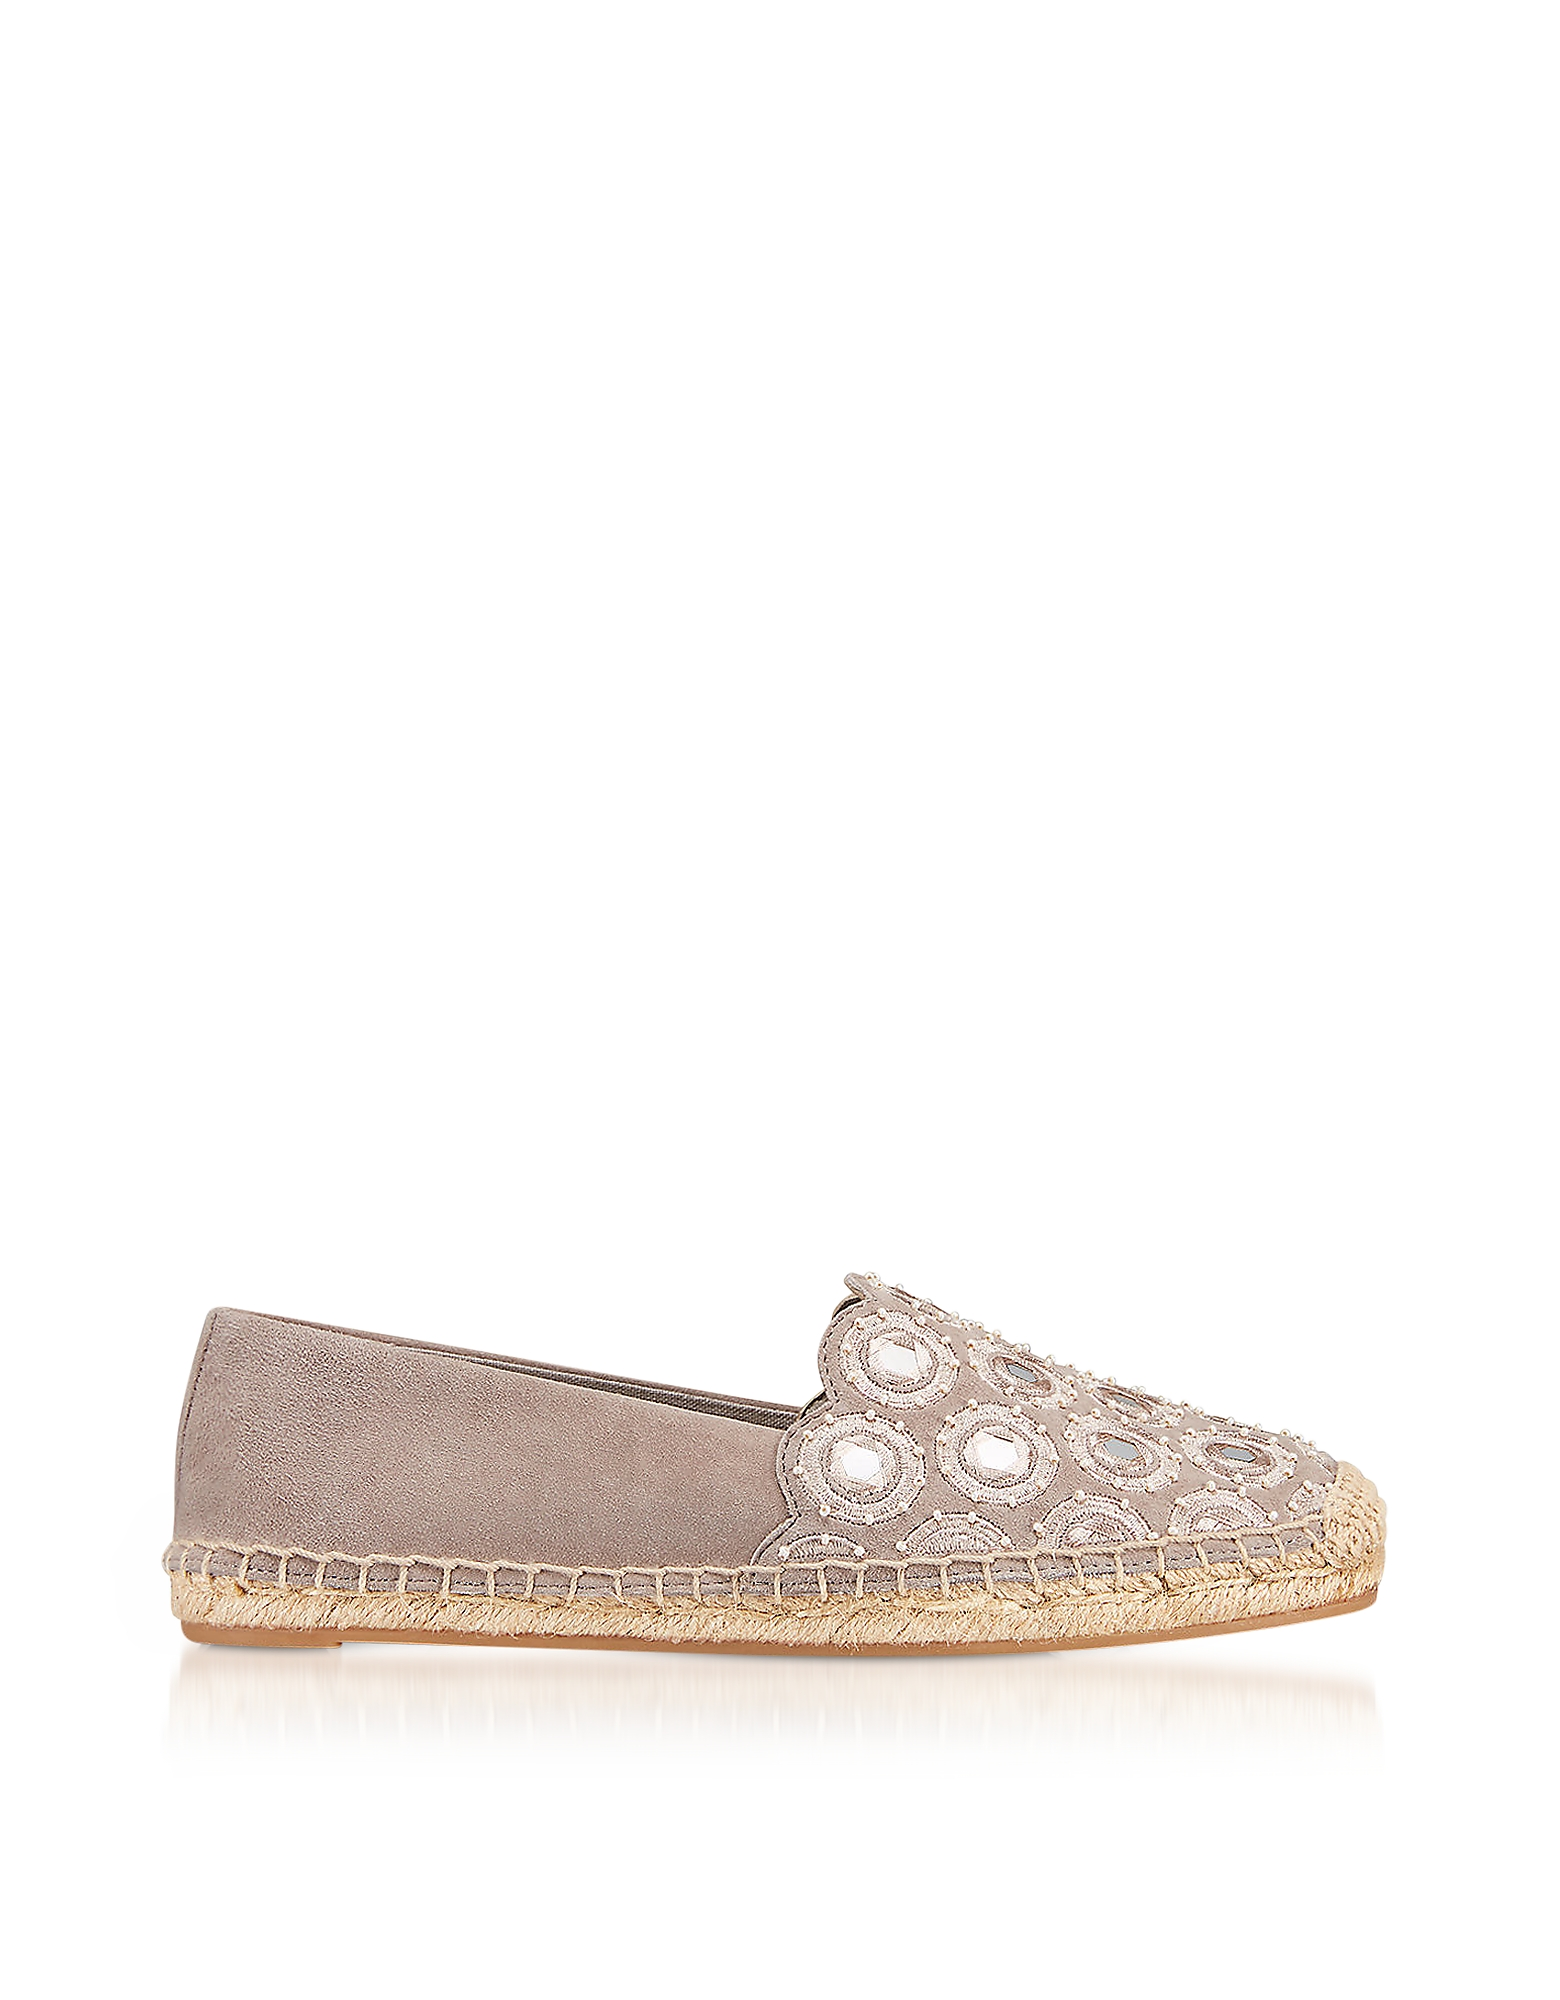 Tory Burch Shoes, Yasmin Dust Storm Suede Embellished Flat Espadrilles